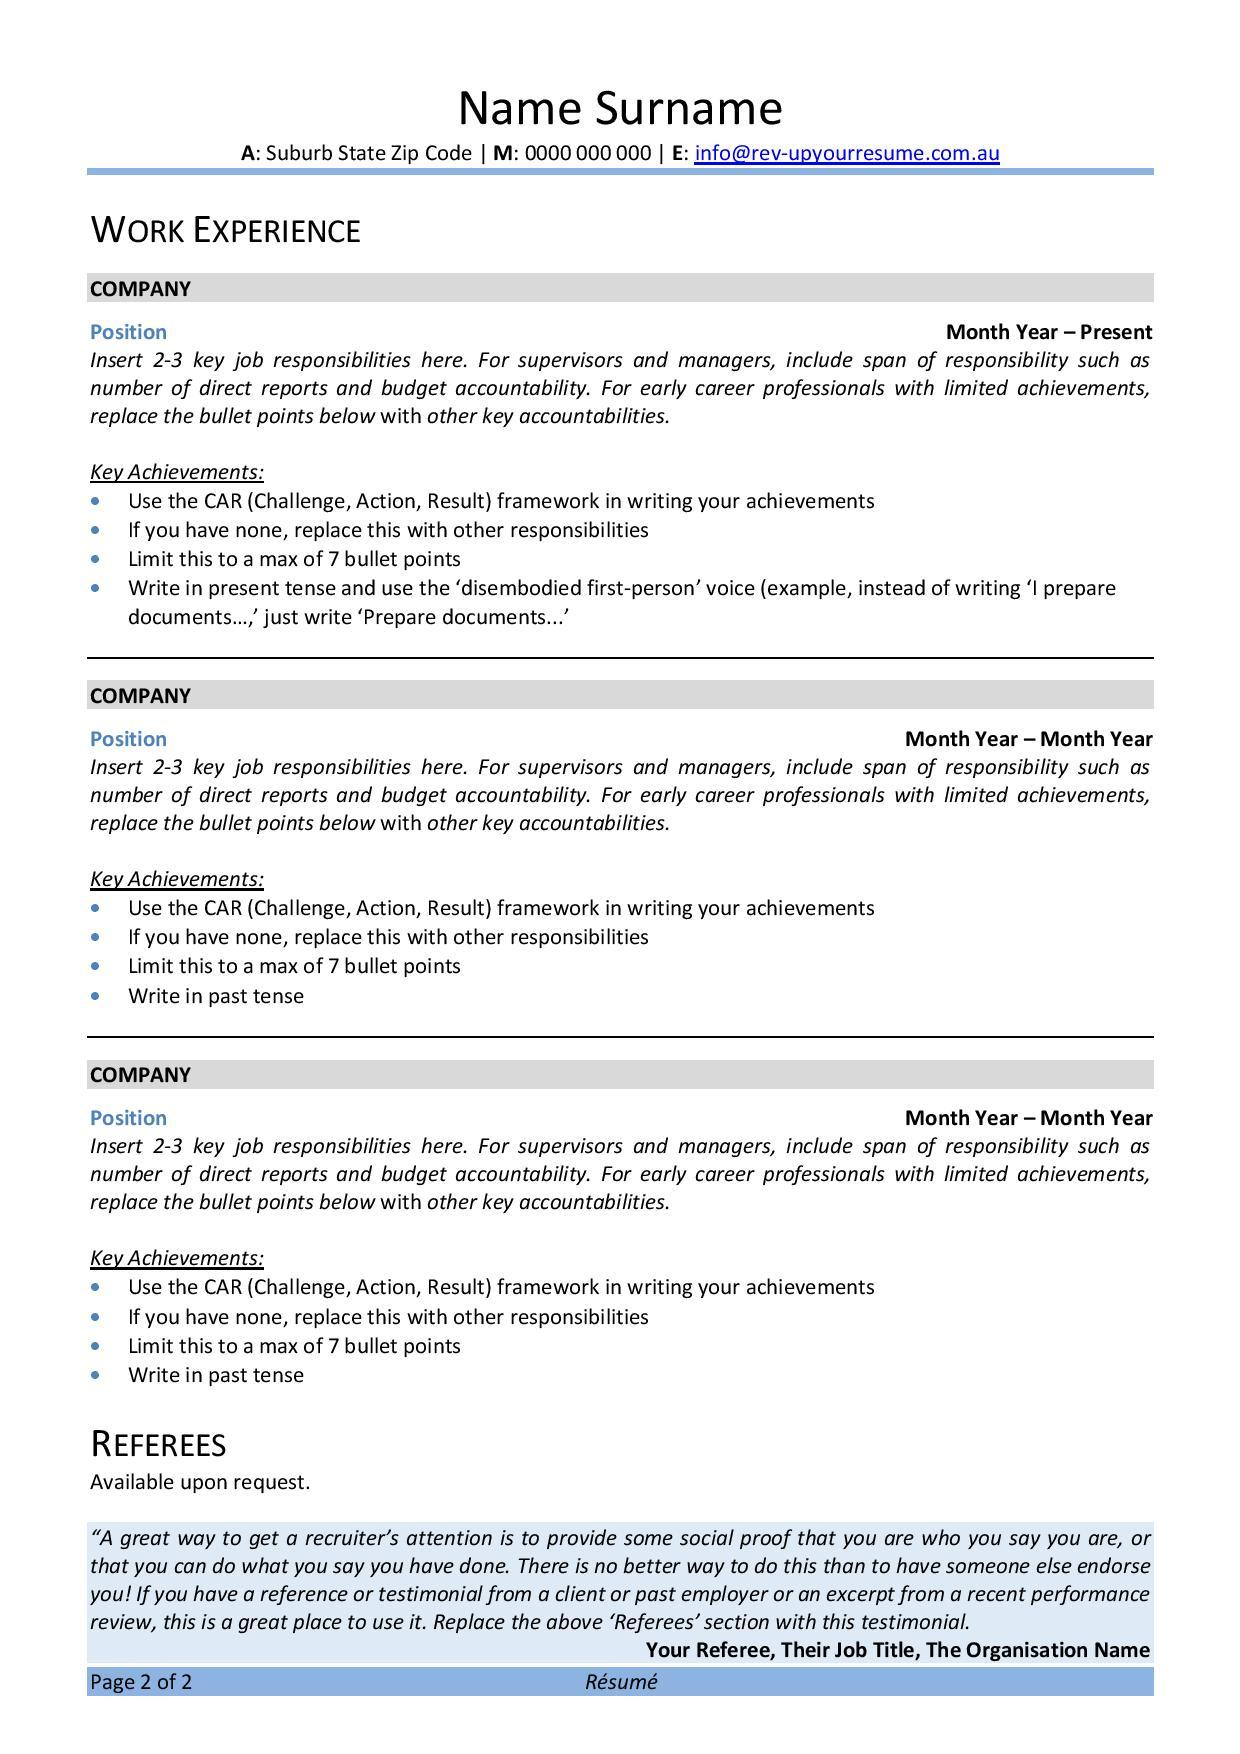 free australian resume template rev up your writing style examples covid mulesoft indeed Resume Resume Writing Australian Style Examples